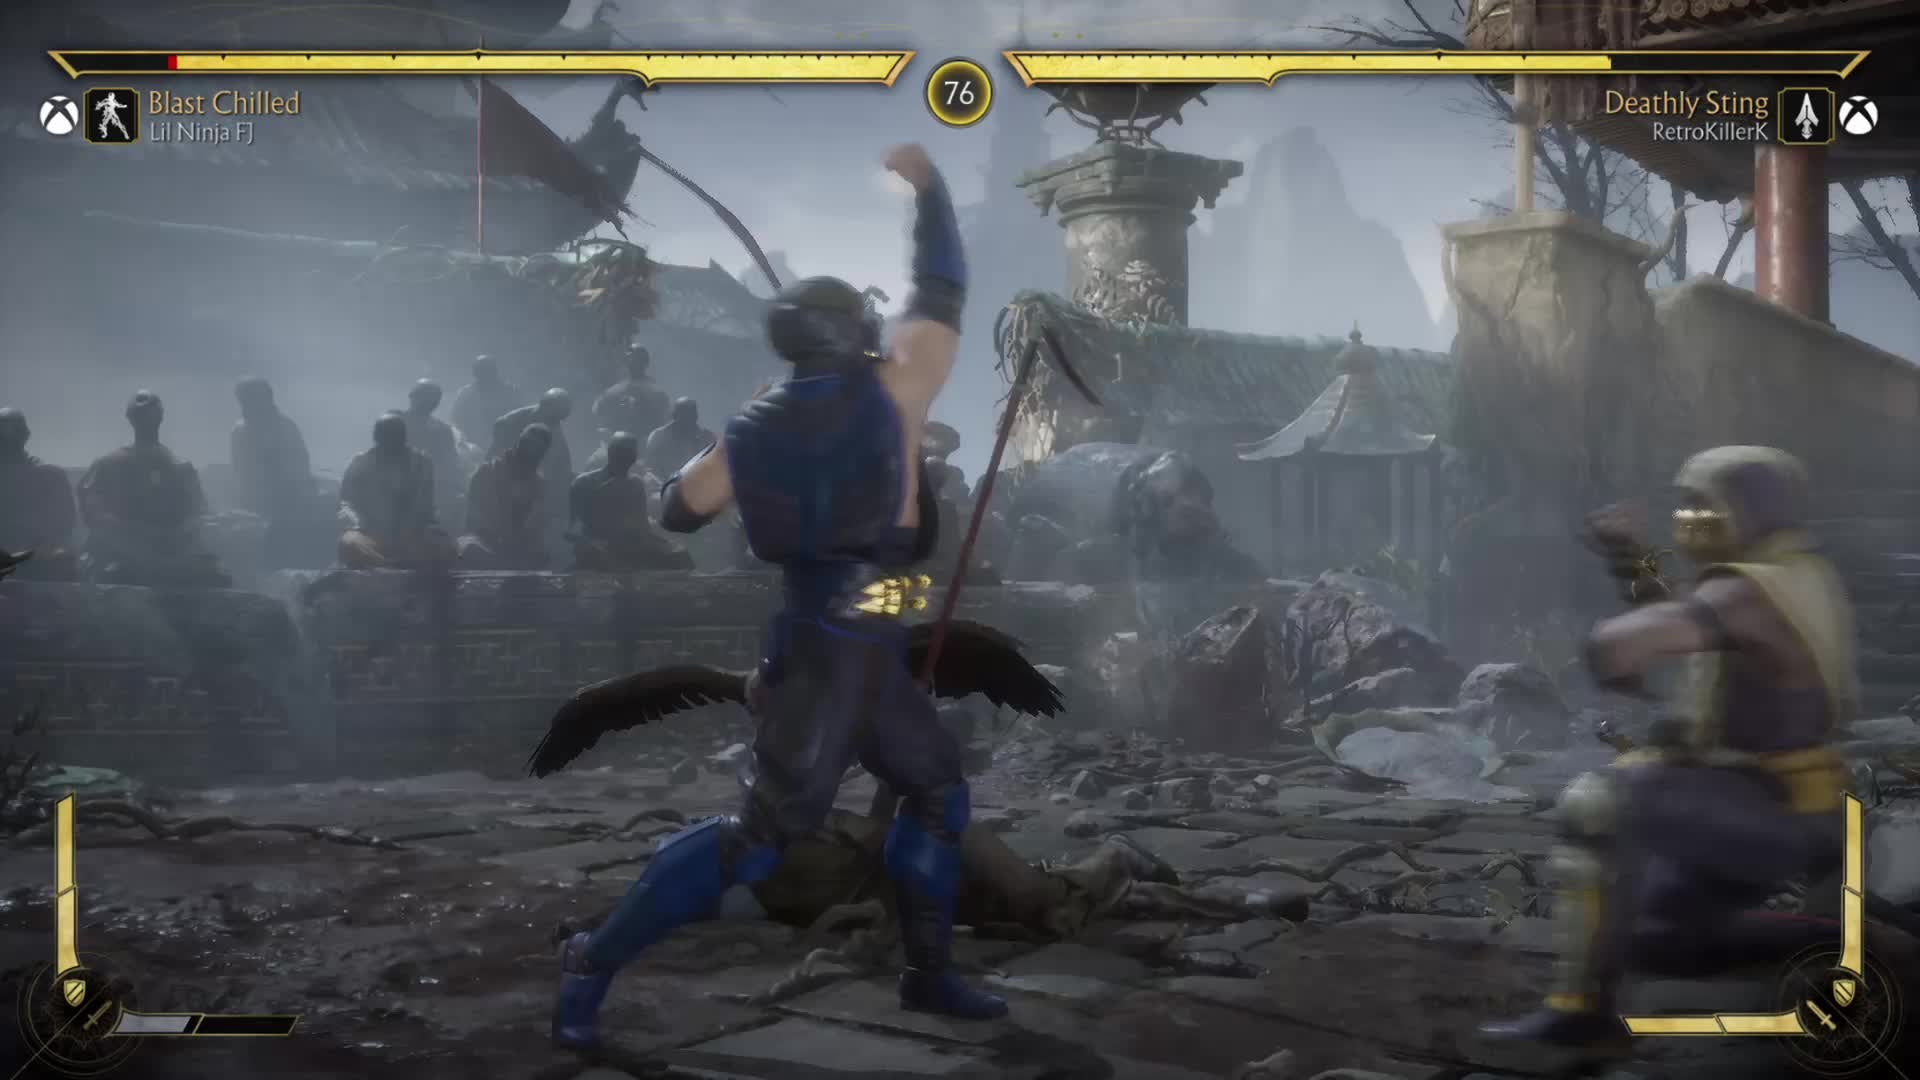 Mortal Kombat: General - This guy choked video cover image 0